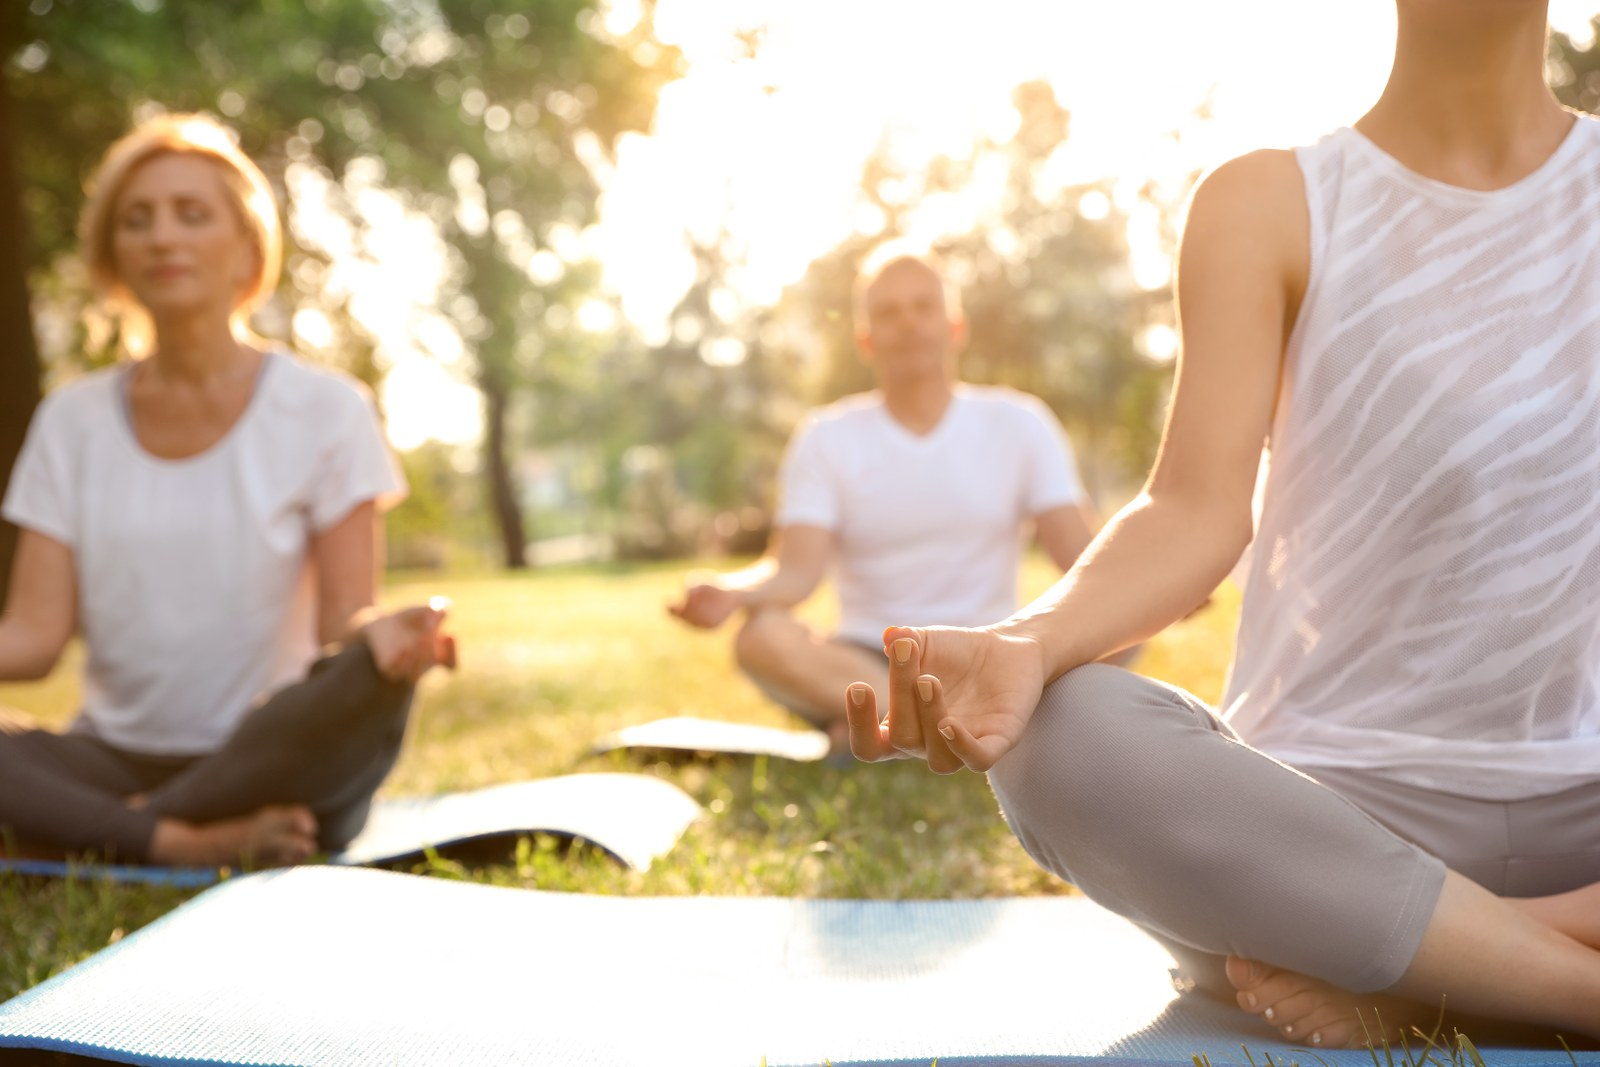 People practicing yoga in park at morning, closeup